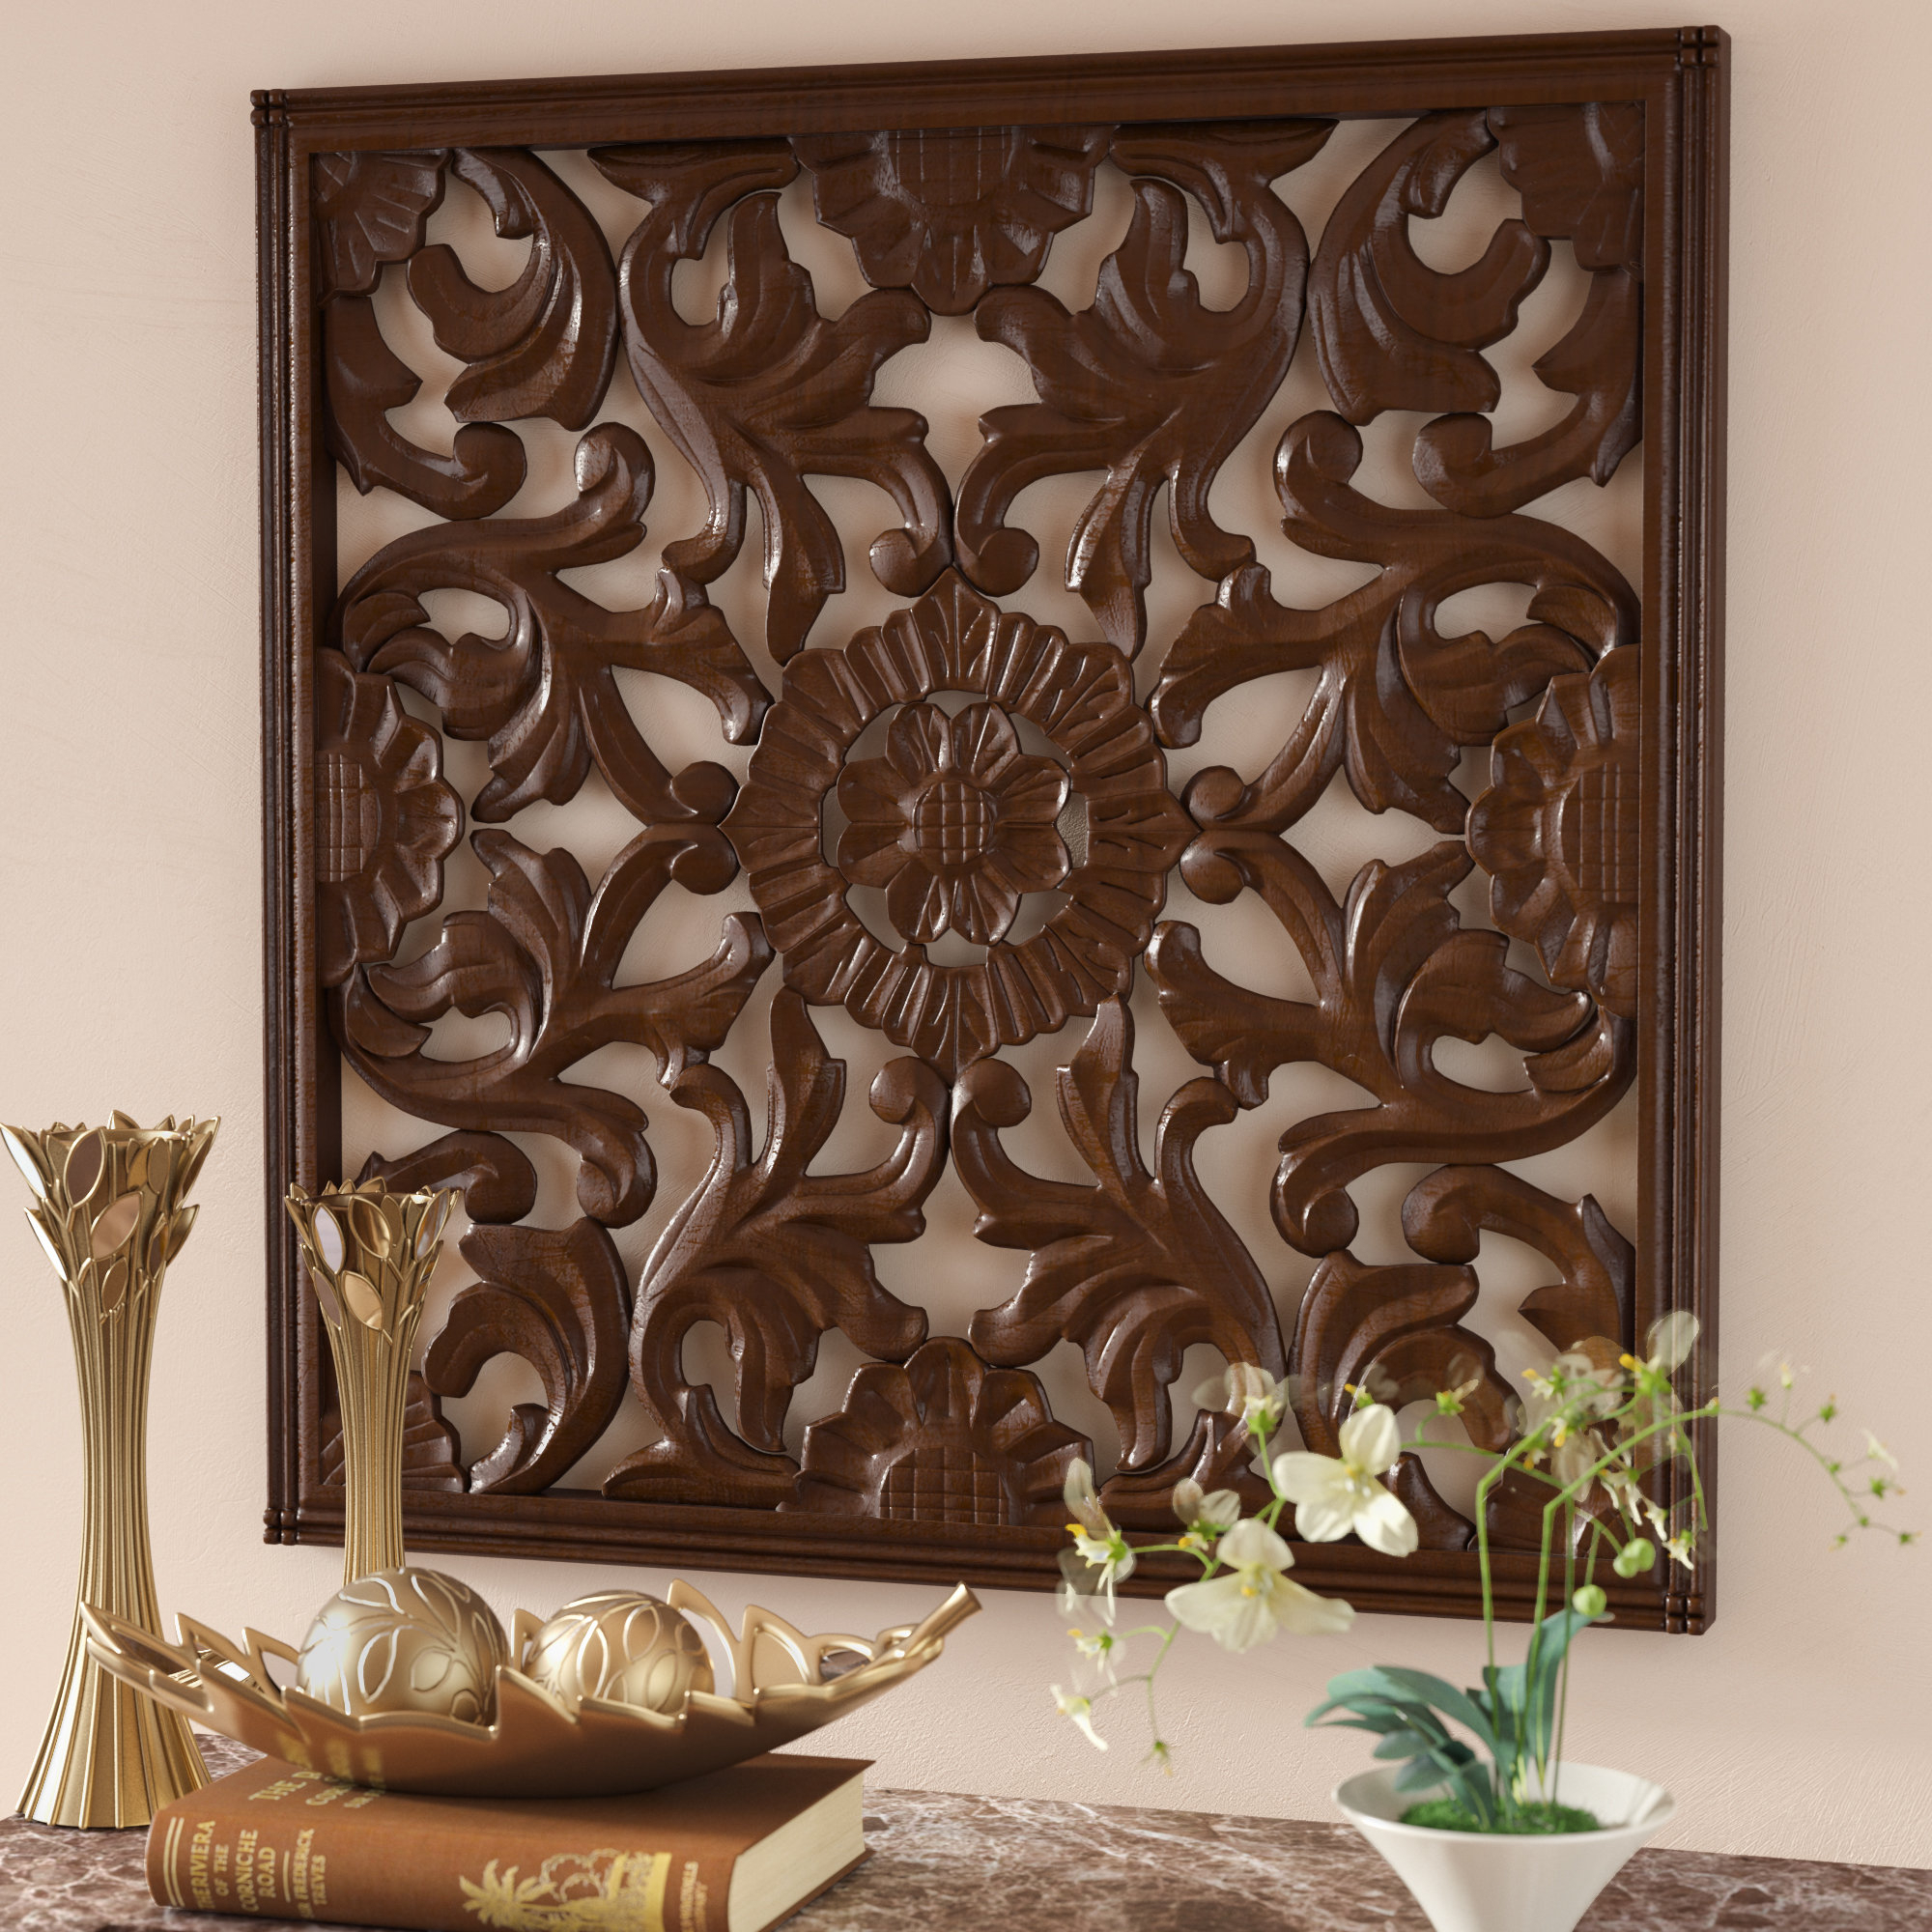 Fashionable European Medallion Wall Decor With Regard To Astoria Grand Square Handcrafted Medallion Wall Décor & Reviews (View 10 of 20)